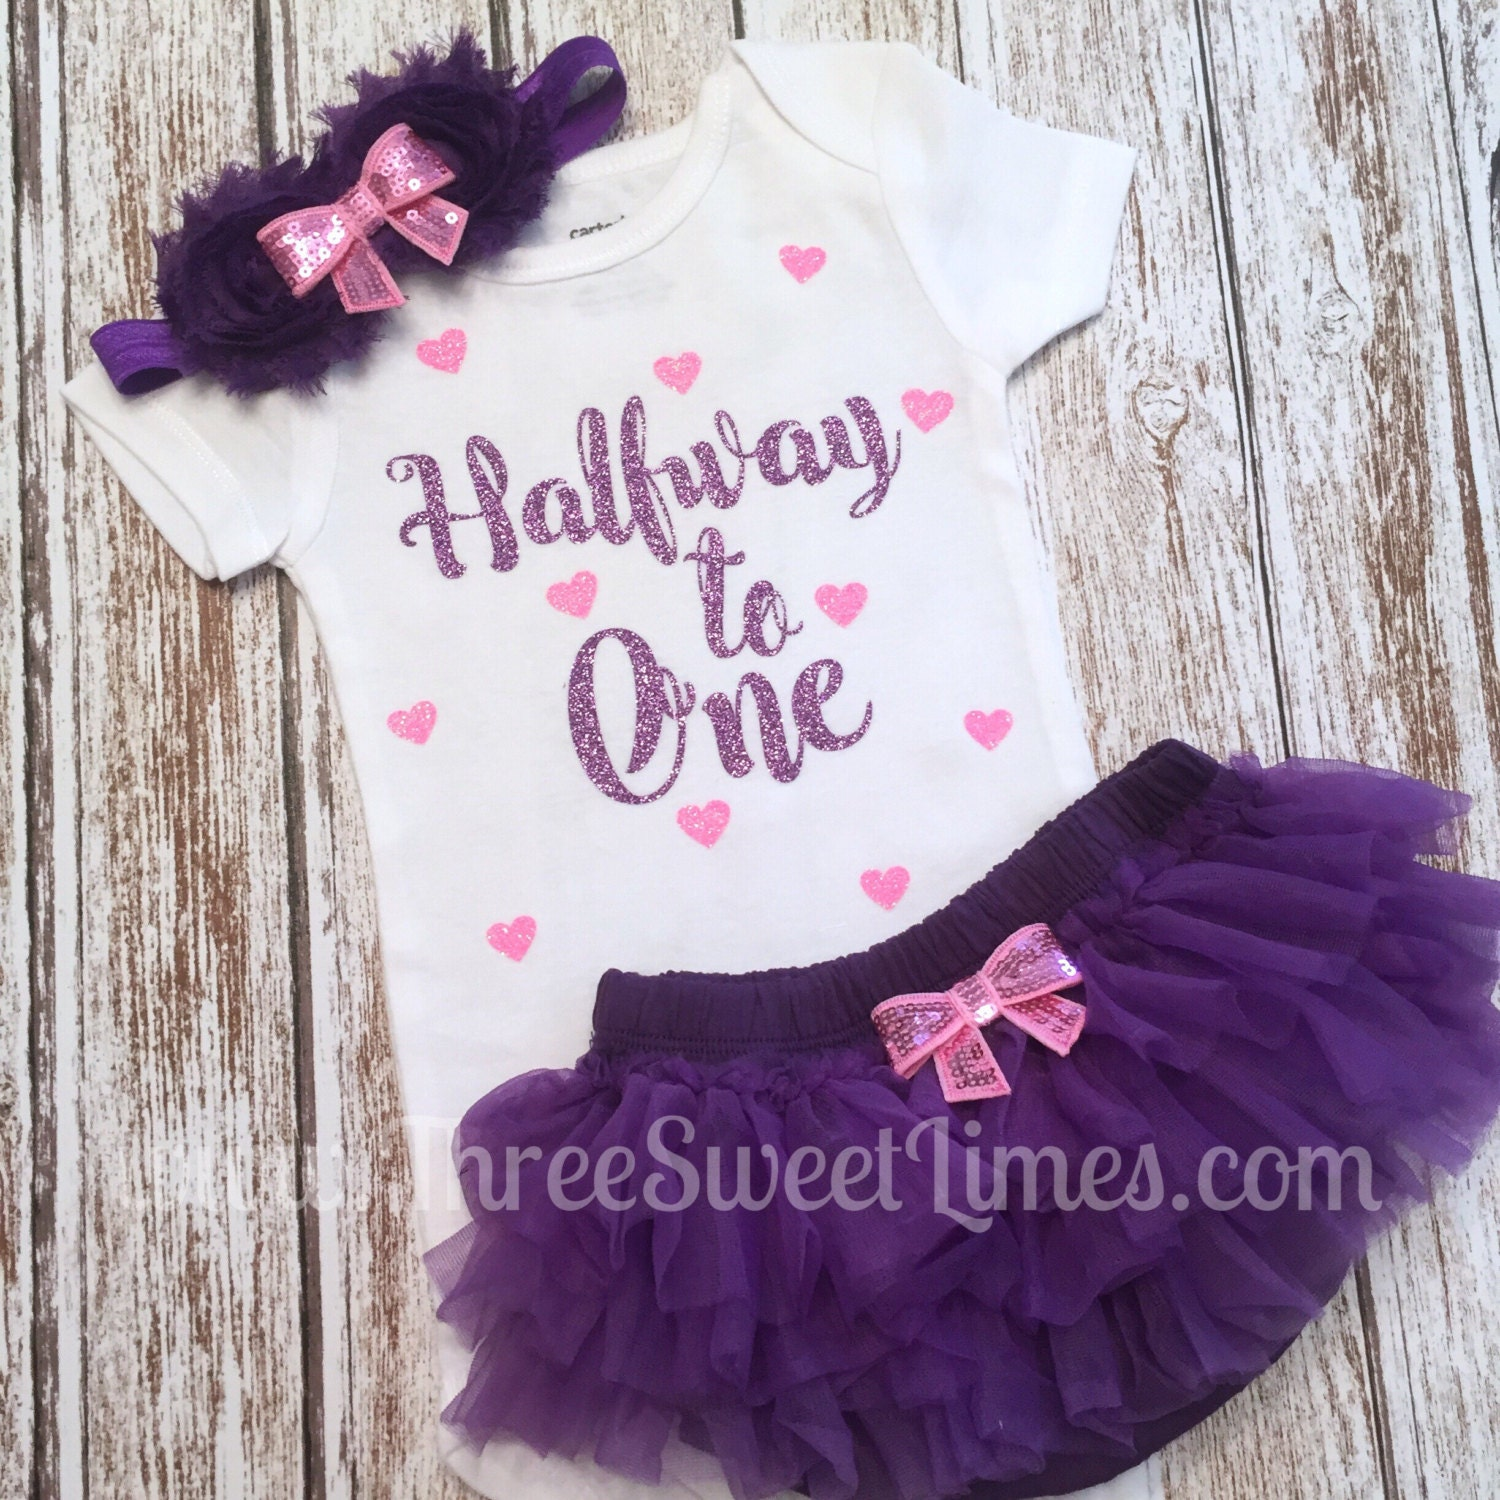 Halfway To One Baby Girl Outfit Tutu Bloomers Six Month